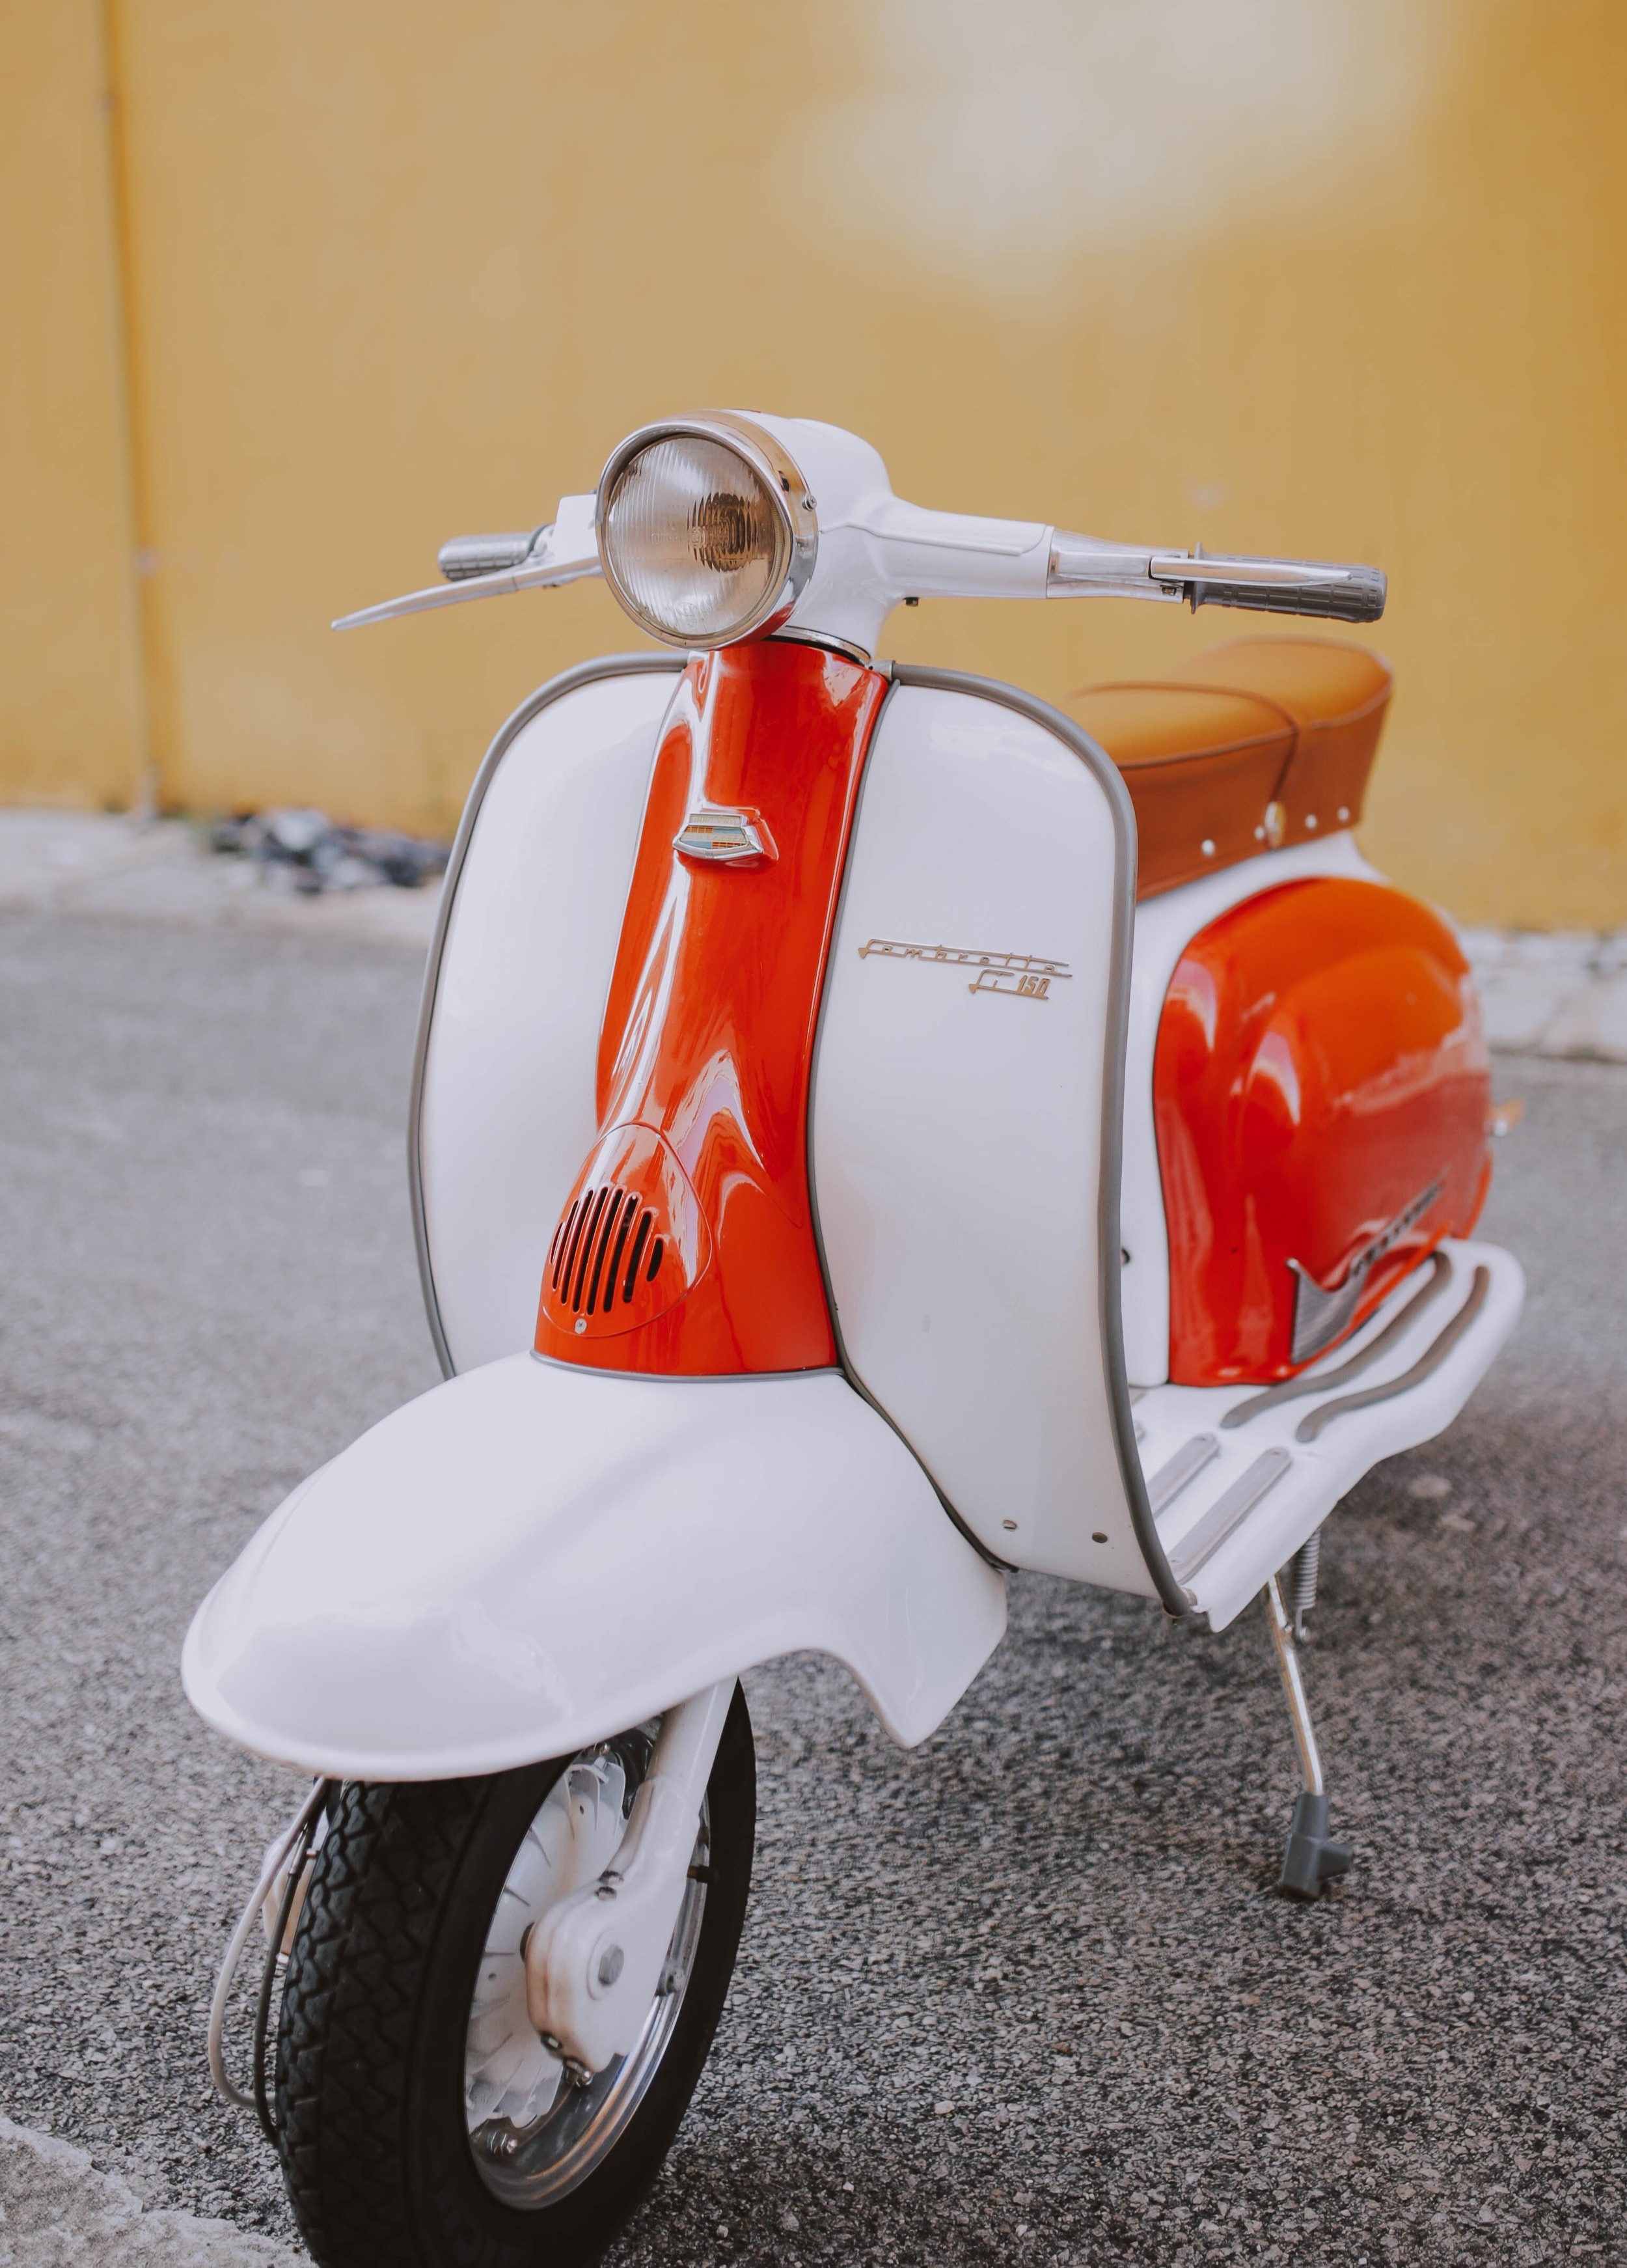 Vintage Vespa Rentals in Palm Springs - These vintage Vespa's are real vintage 1960's models. While they have been completely restored, riding one is like a complete time warp, back to what it was like cruising down Palm Canyon Blvd, in say, - 1967.